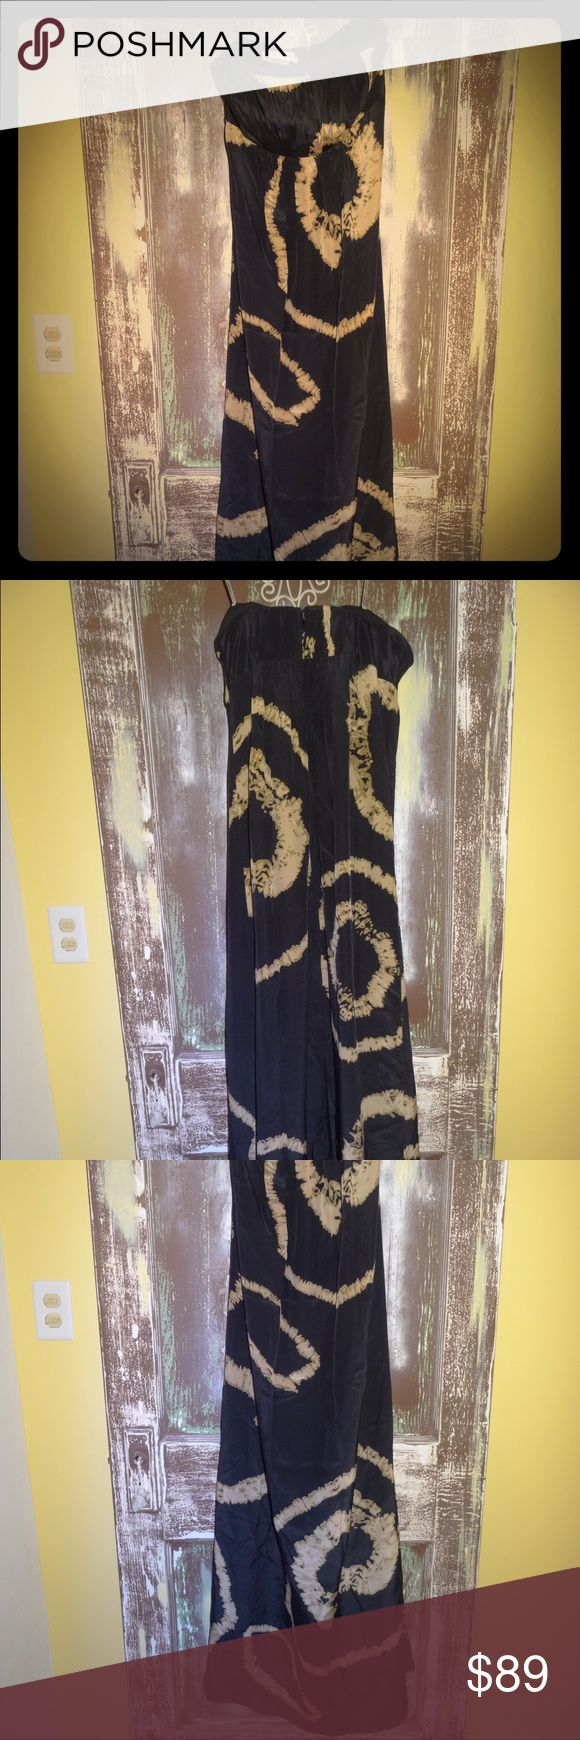 NWOT KAY UNGER BLACK SILK LONG STRAPLESS GOWN 2 NWOT KAY UNGER BLACK SILK RUFFLED LONG STRAPLESS MAXI GOWN EVENING FORMAL DRESS GEOMETRIC PRINT SIZE 2 Kay Unger Dresses Strapless